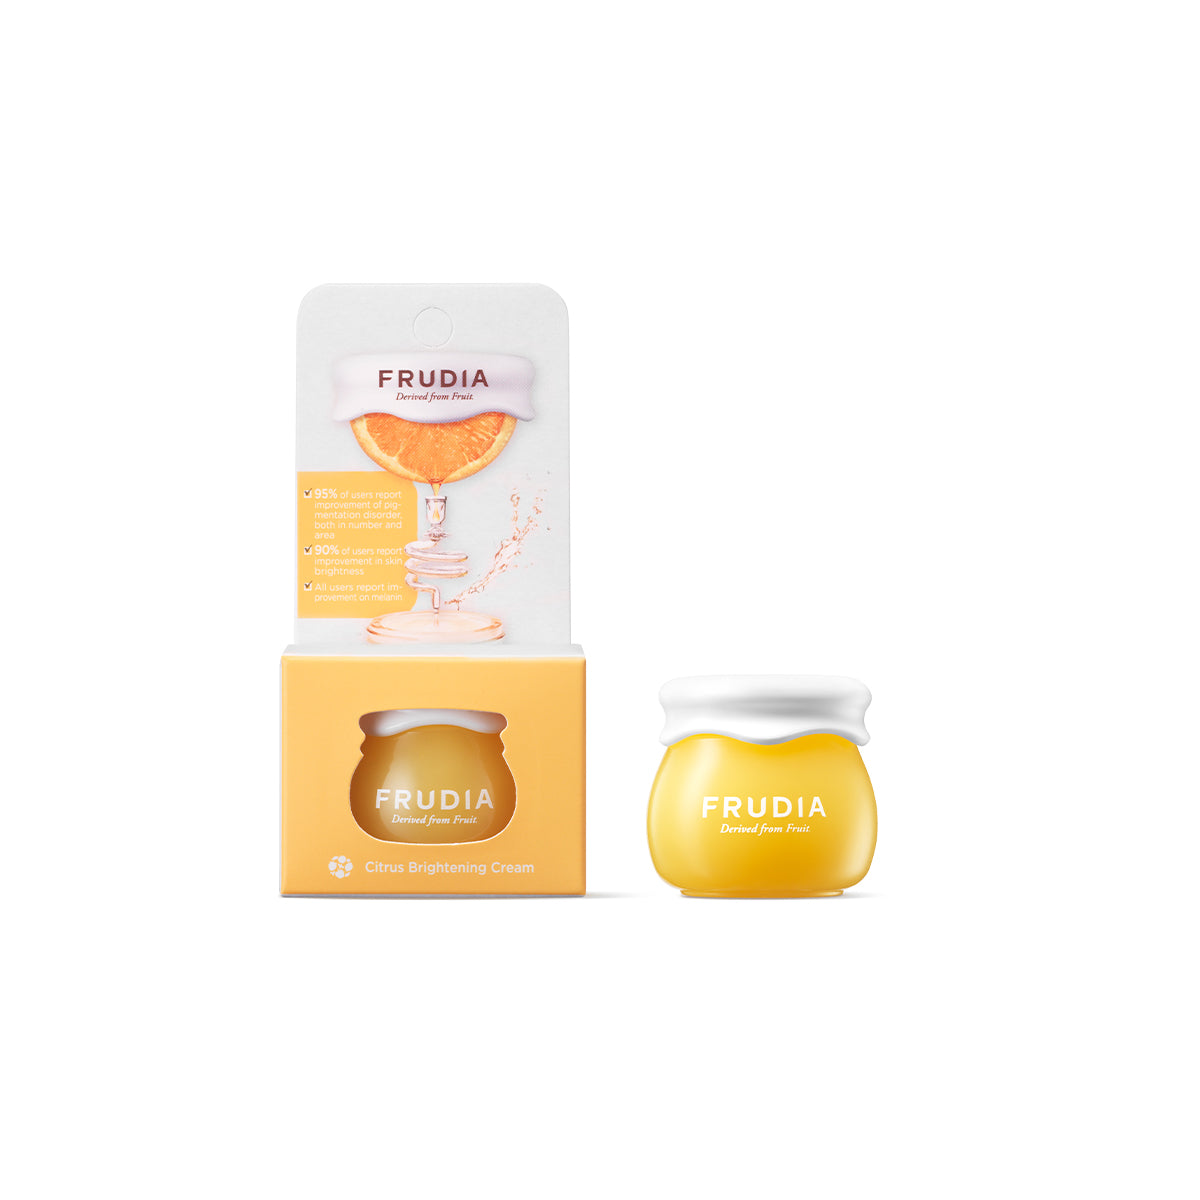 Frudia Citrus Brightening Cream - Mini 10g